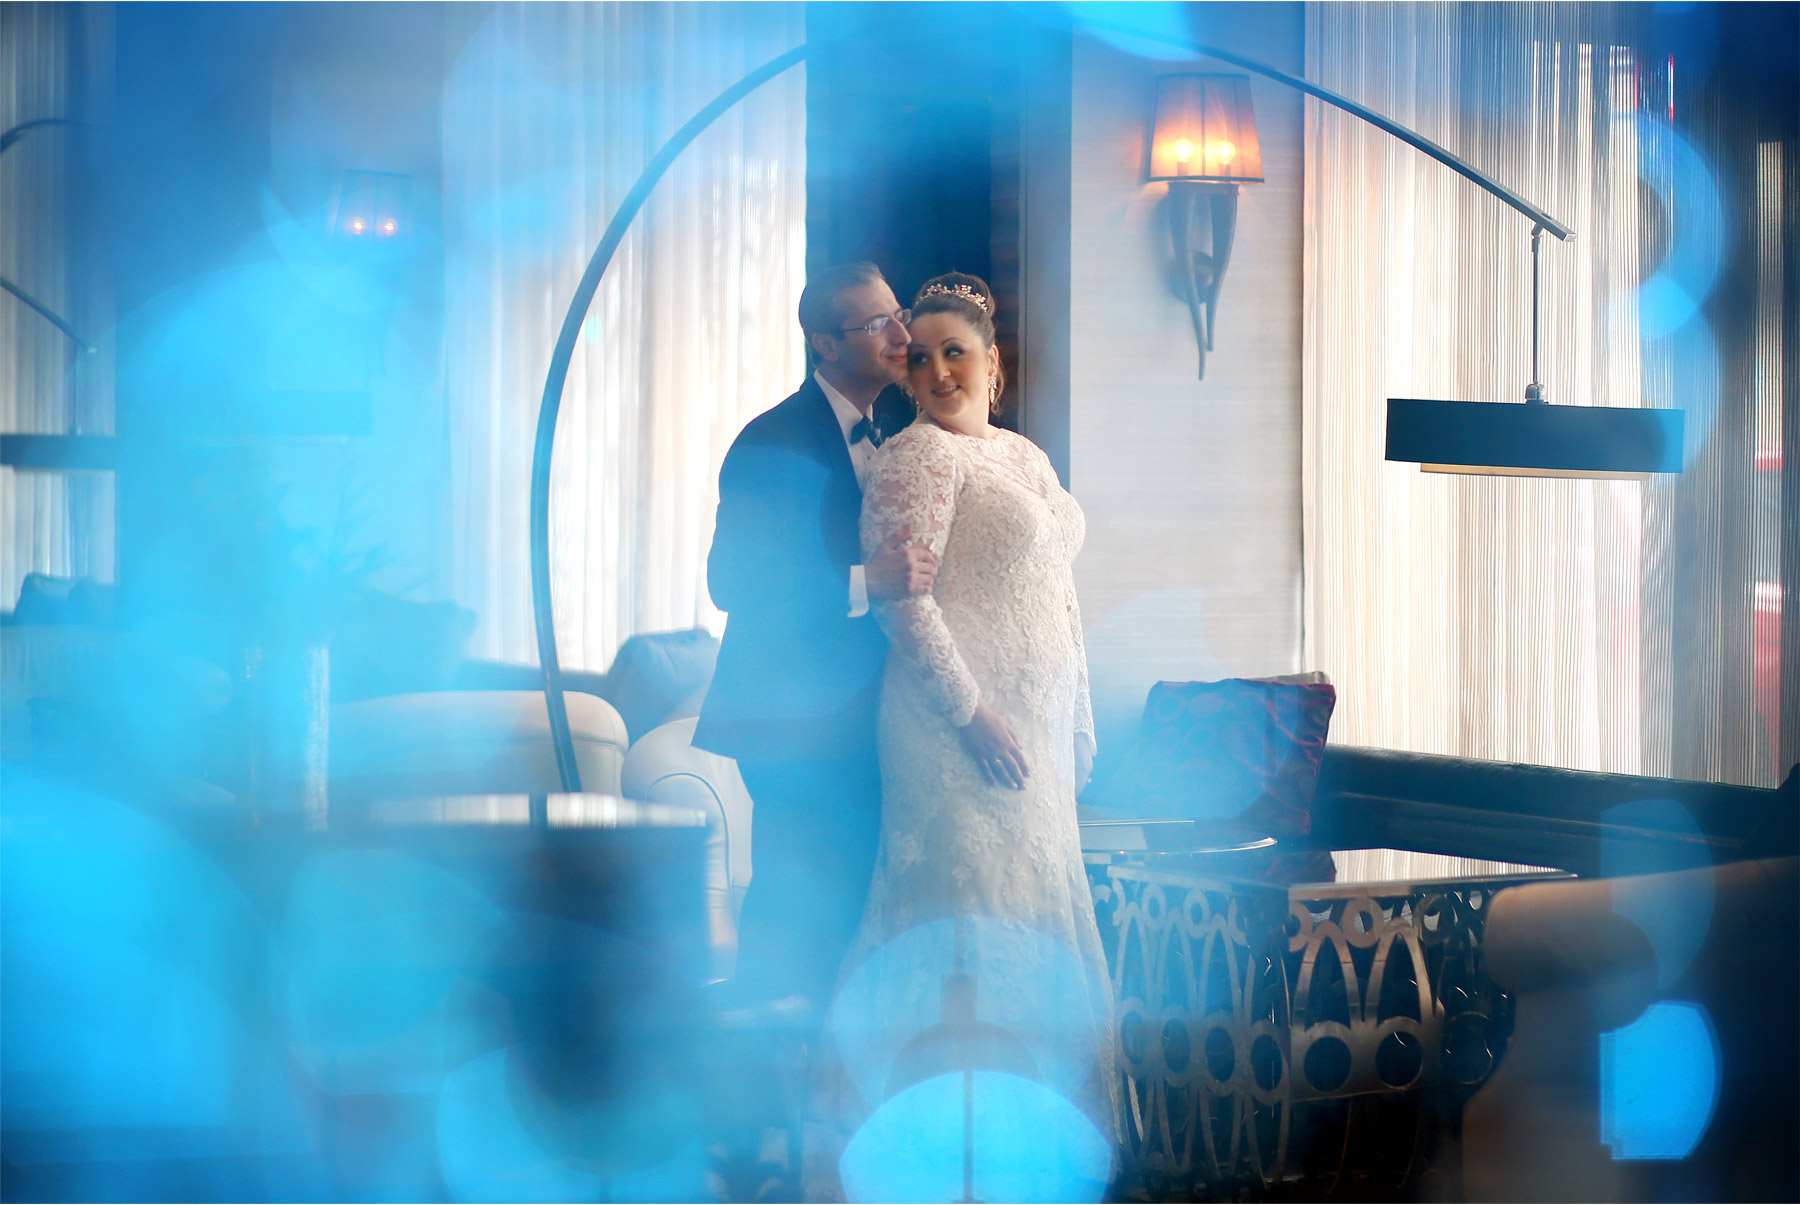 07-Minneapolis-Minnesota-Wedding-Photography-by-Vick-Photography-The-Marquette-Hotel-IDS-Center-Anja-and-Waseem.jpg